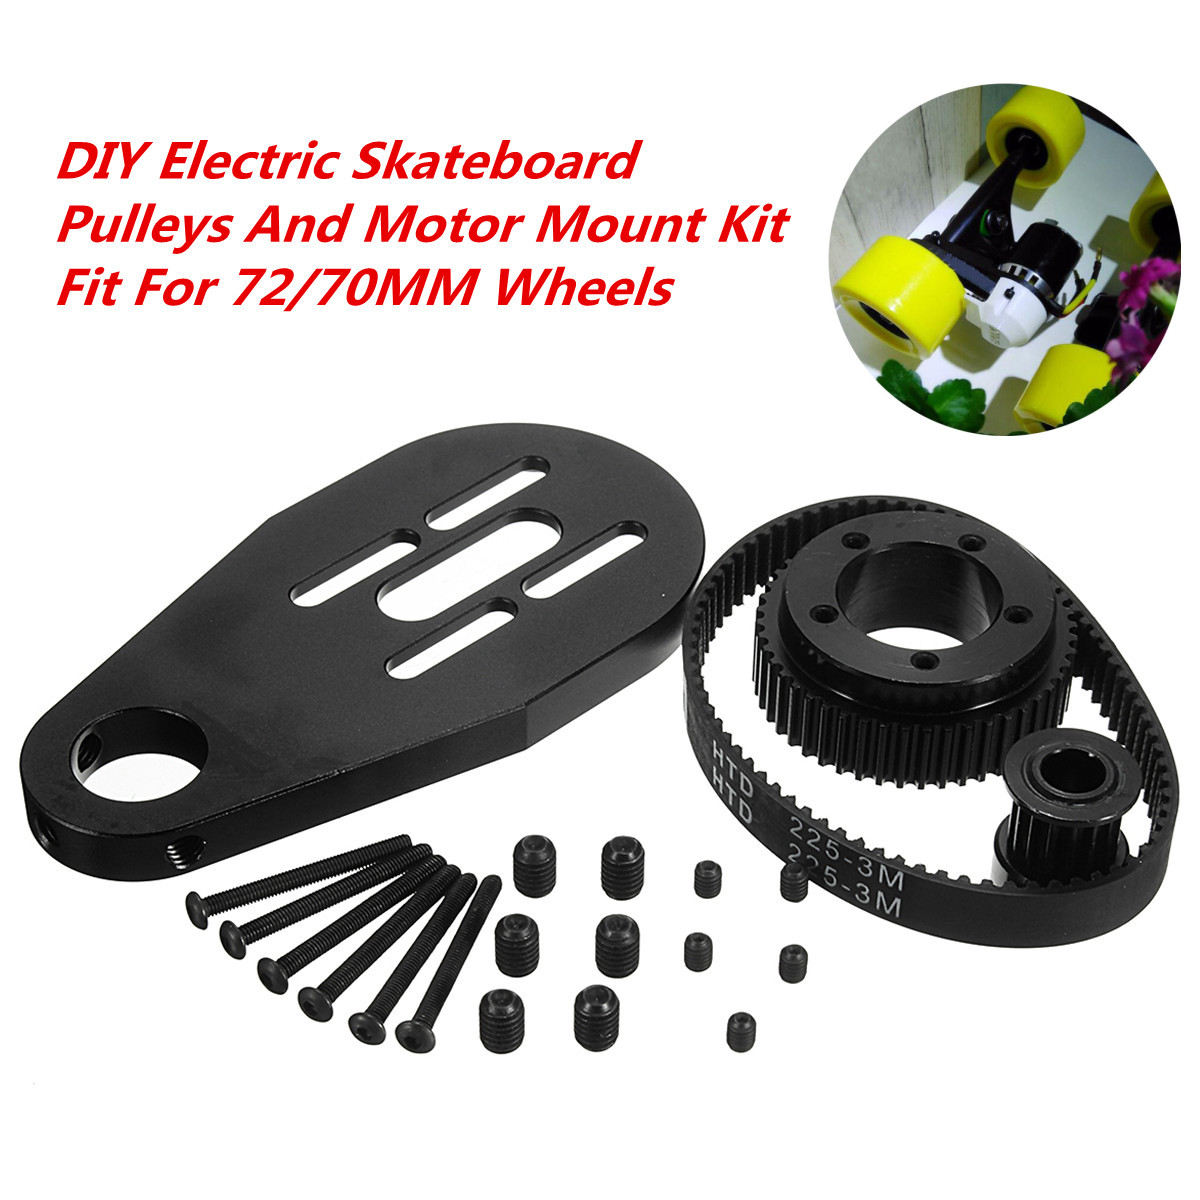 DIY Electric Skateboard Kit Parts Pulleys + Motor Mount +Belt For 72/70MM Wheels Skate Board PulleyDIY Electric Skateboard Kit Parts Pulleys + Motor Mount +Belt For 72/70MM Wheels Skate Board Pulley